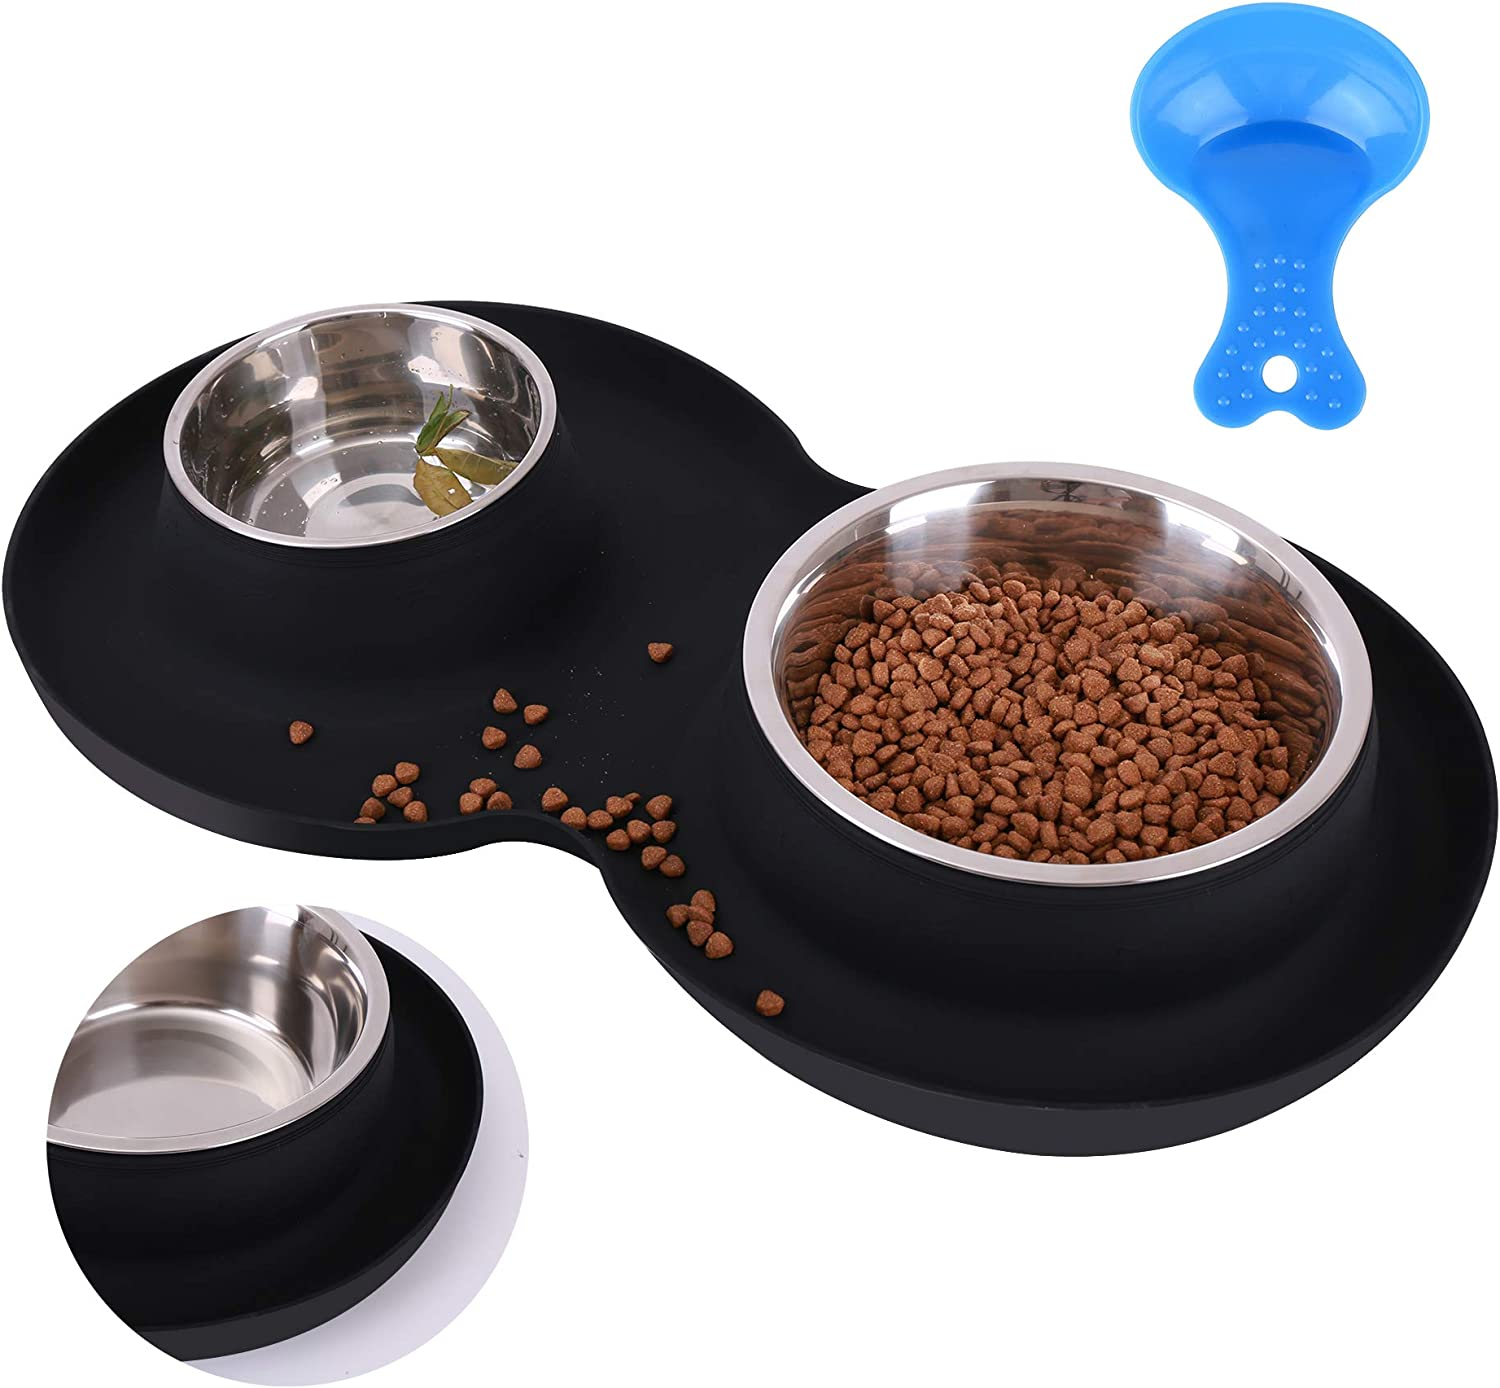 Yacee Pet Dog Bowls2 Stainless Steel XXL Dog Bowl(53oz+27oz) with 1.2 inch No Spill Non-Skid Silicone Mat + Pet Food Scoop Water and Food Feeder Bowls for Feeding Small Large Dogs Cats Puppies